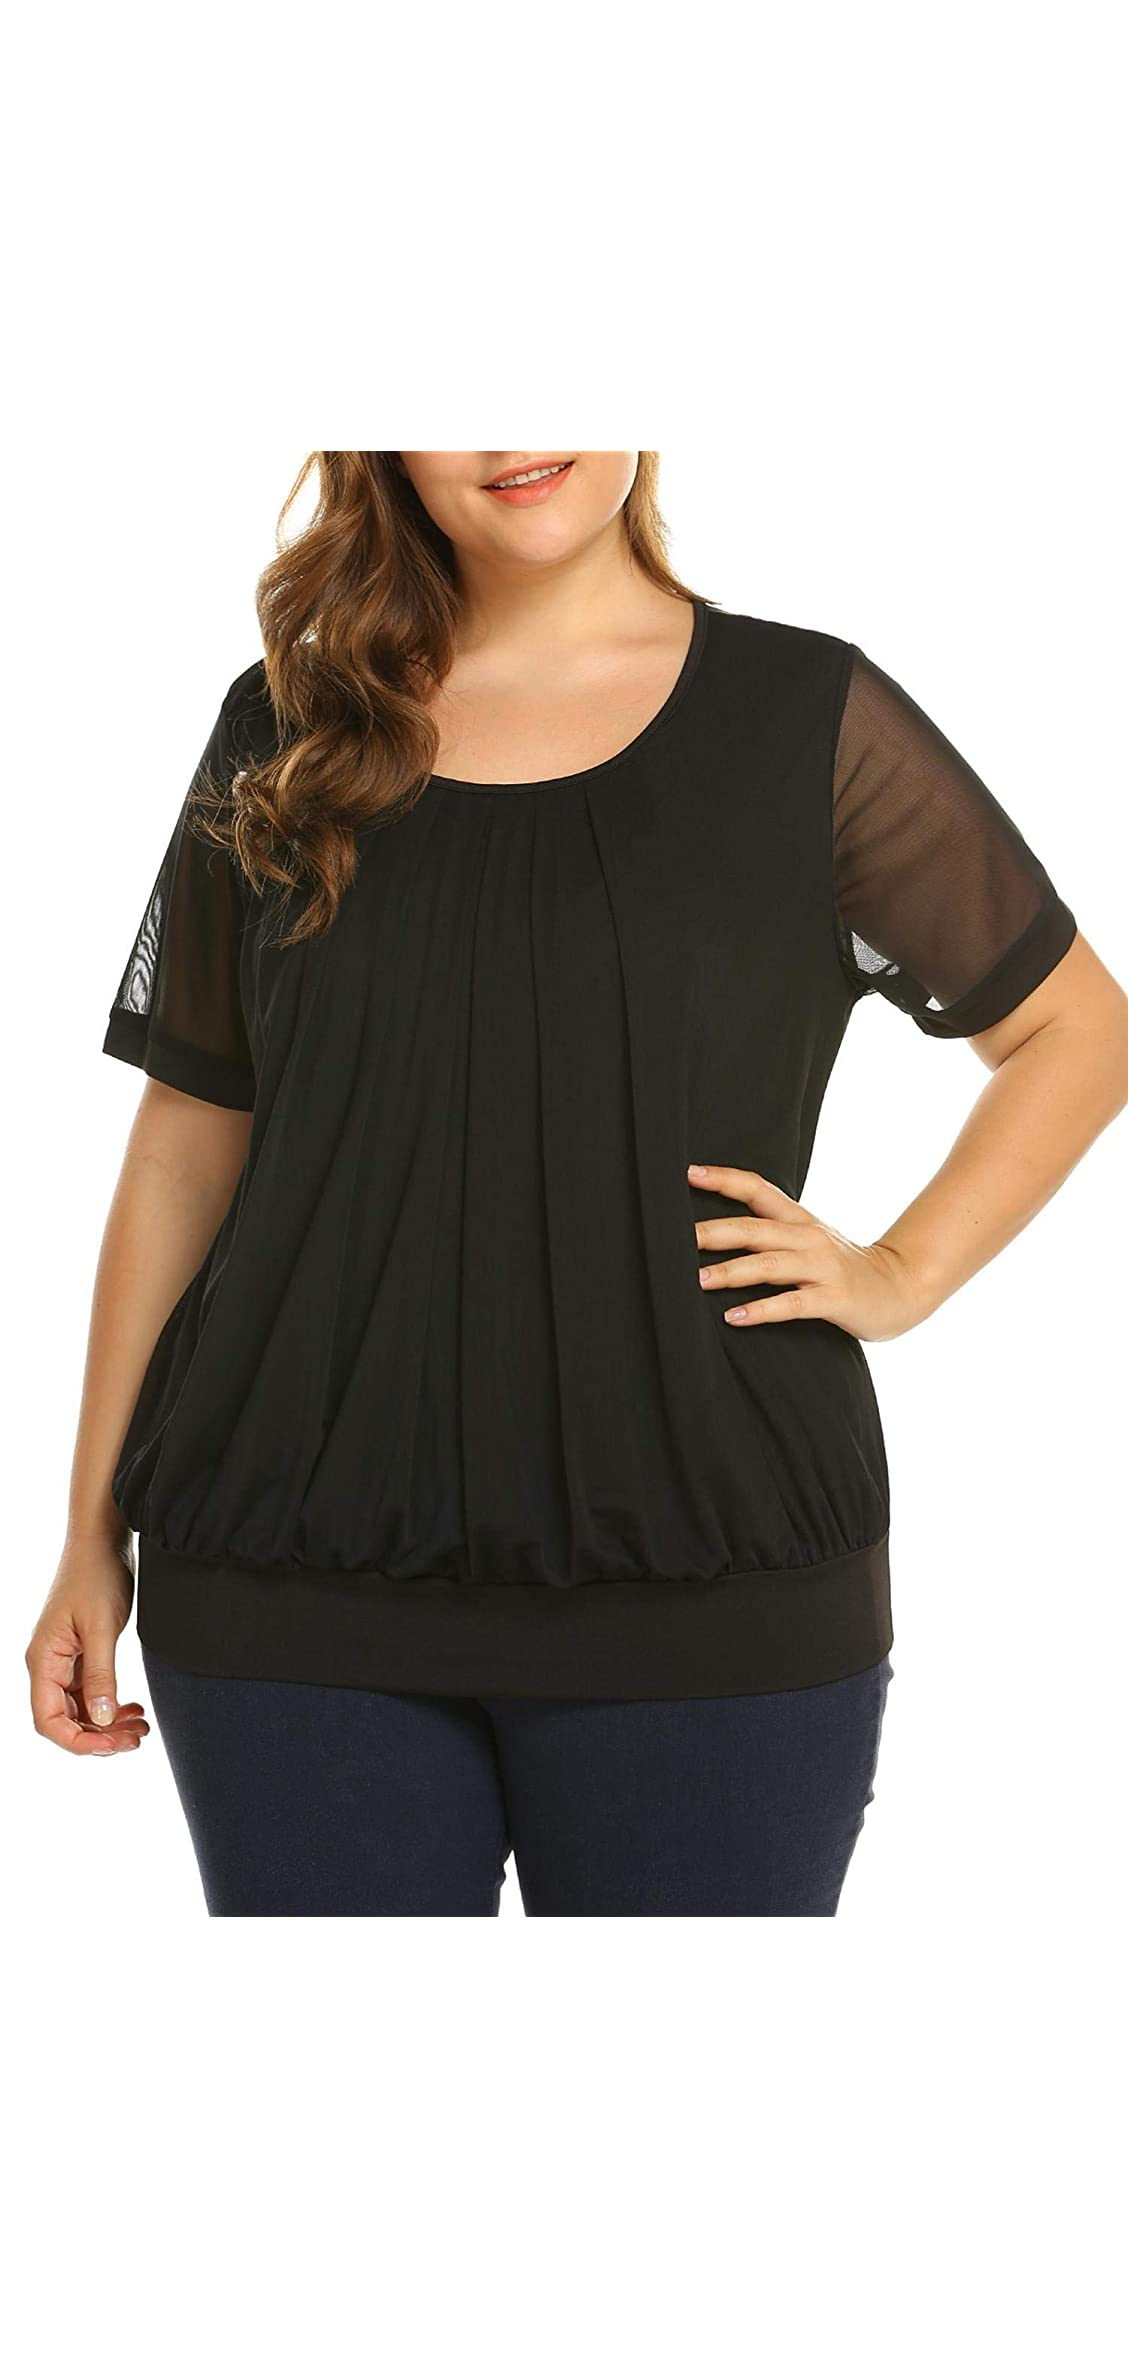 Women's Plus Size Blouses Short/long Sleeve Tunic Tops